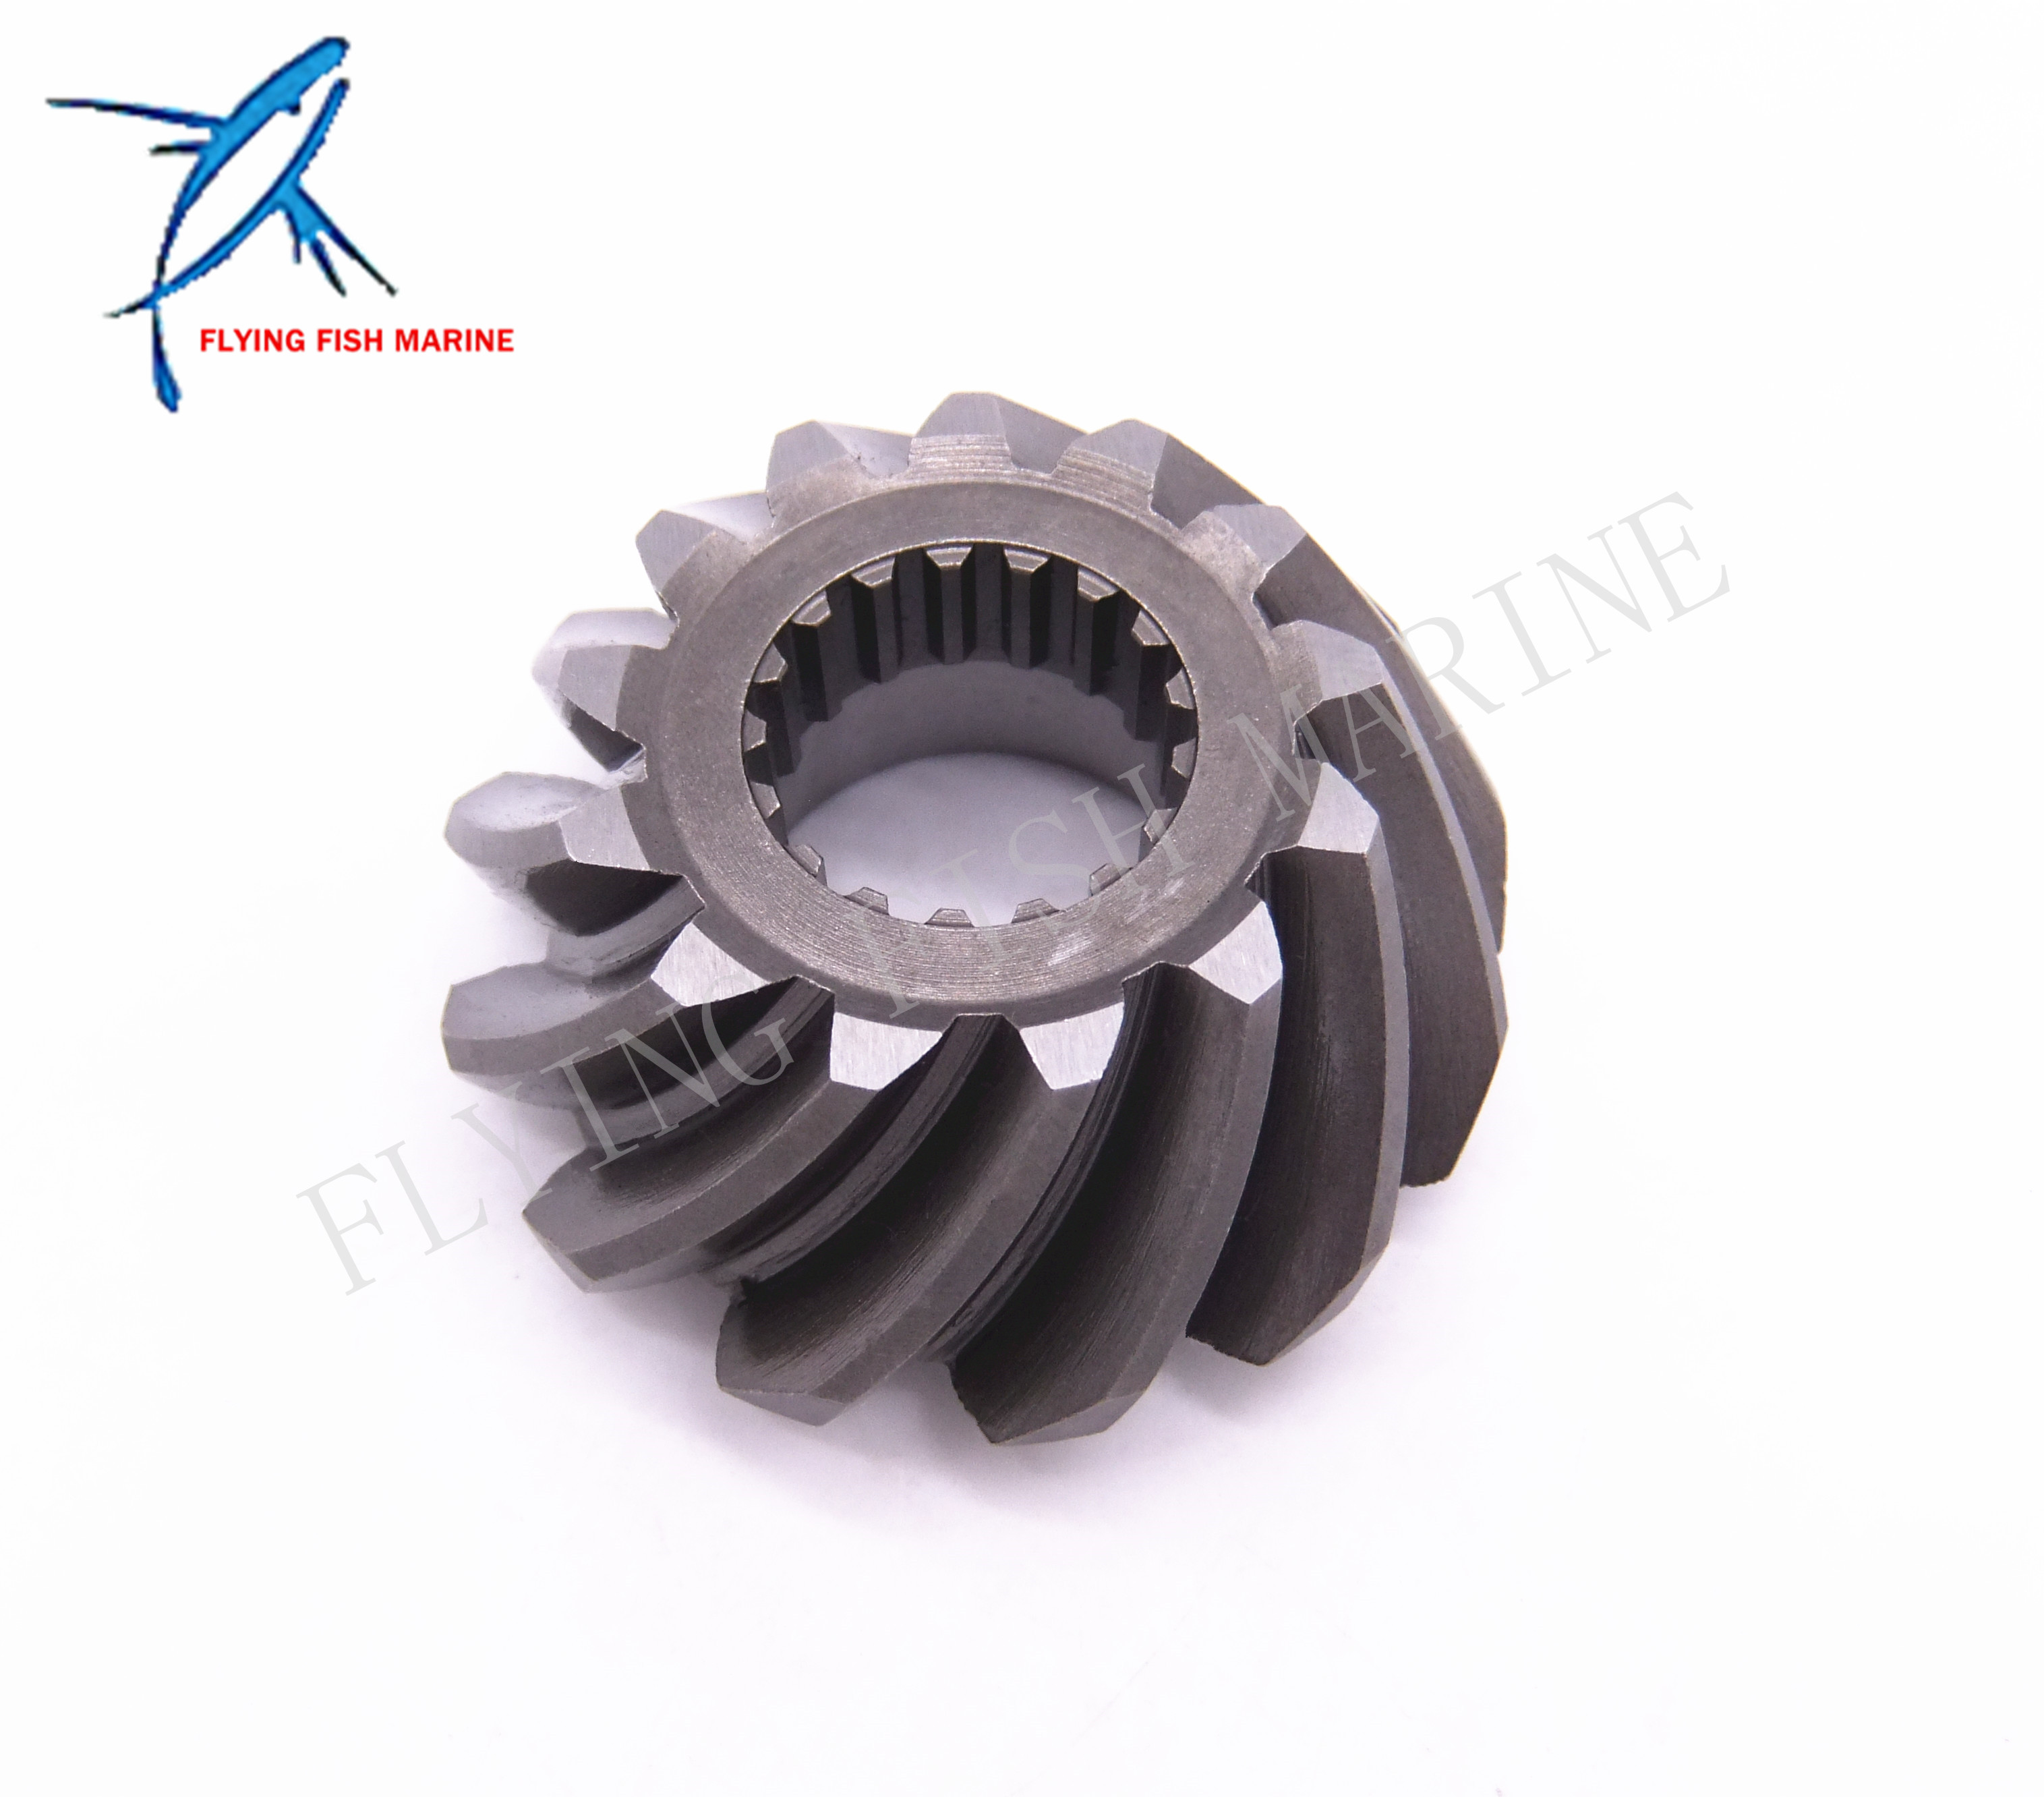 Atv,rv,boat & Other Vehicle T85-04000605 Pinion Gear For Parsun Hdx Outboard Engine 2-stroke T75 T85 T90 Boat Motor Street Price